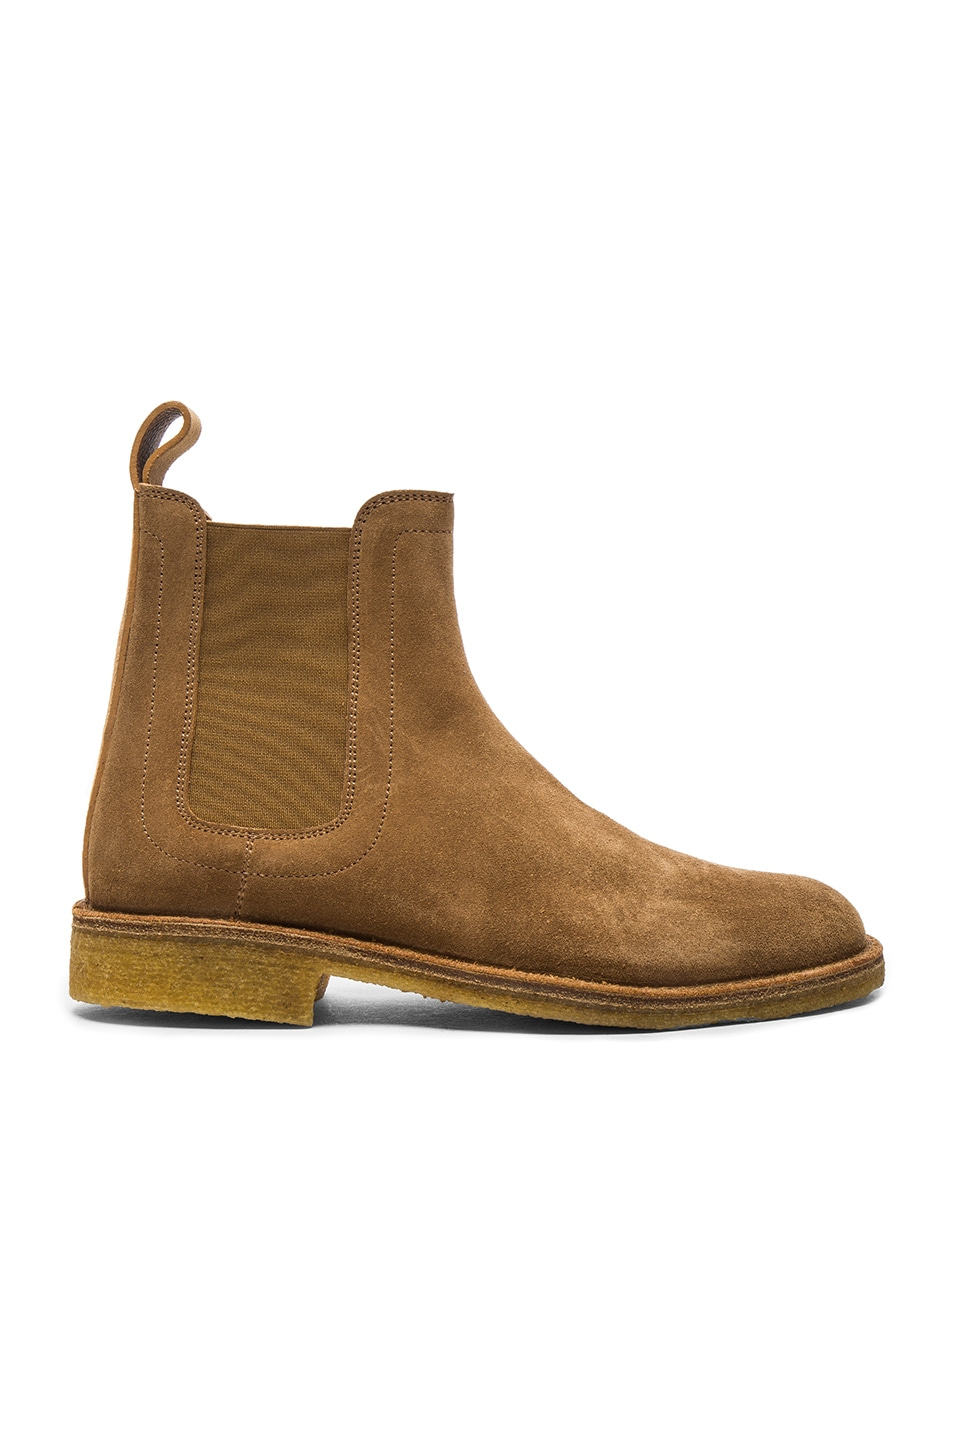 Image 1 of Bottega Veneta Suede Chelsea Boots in New Camel